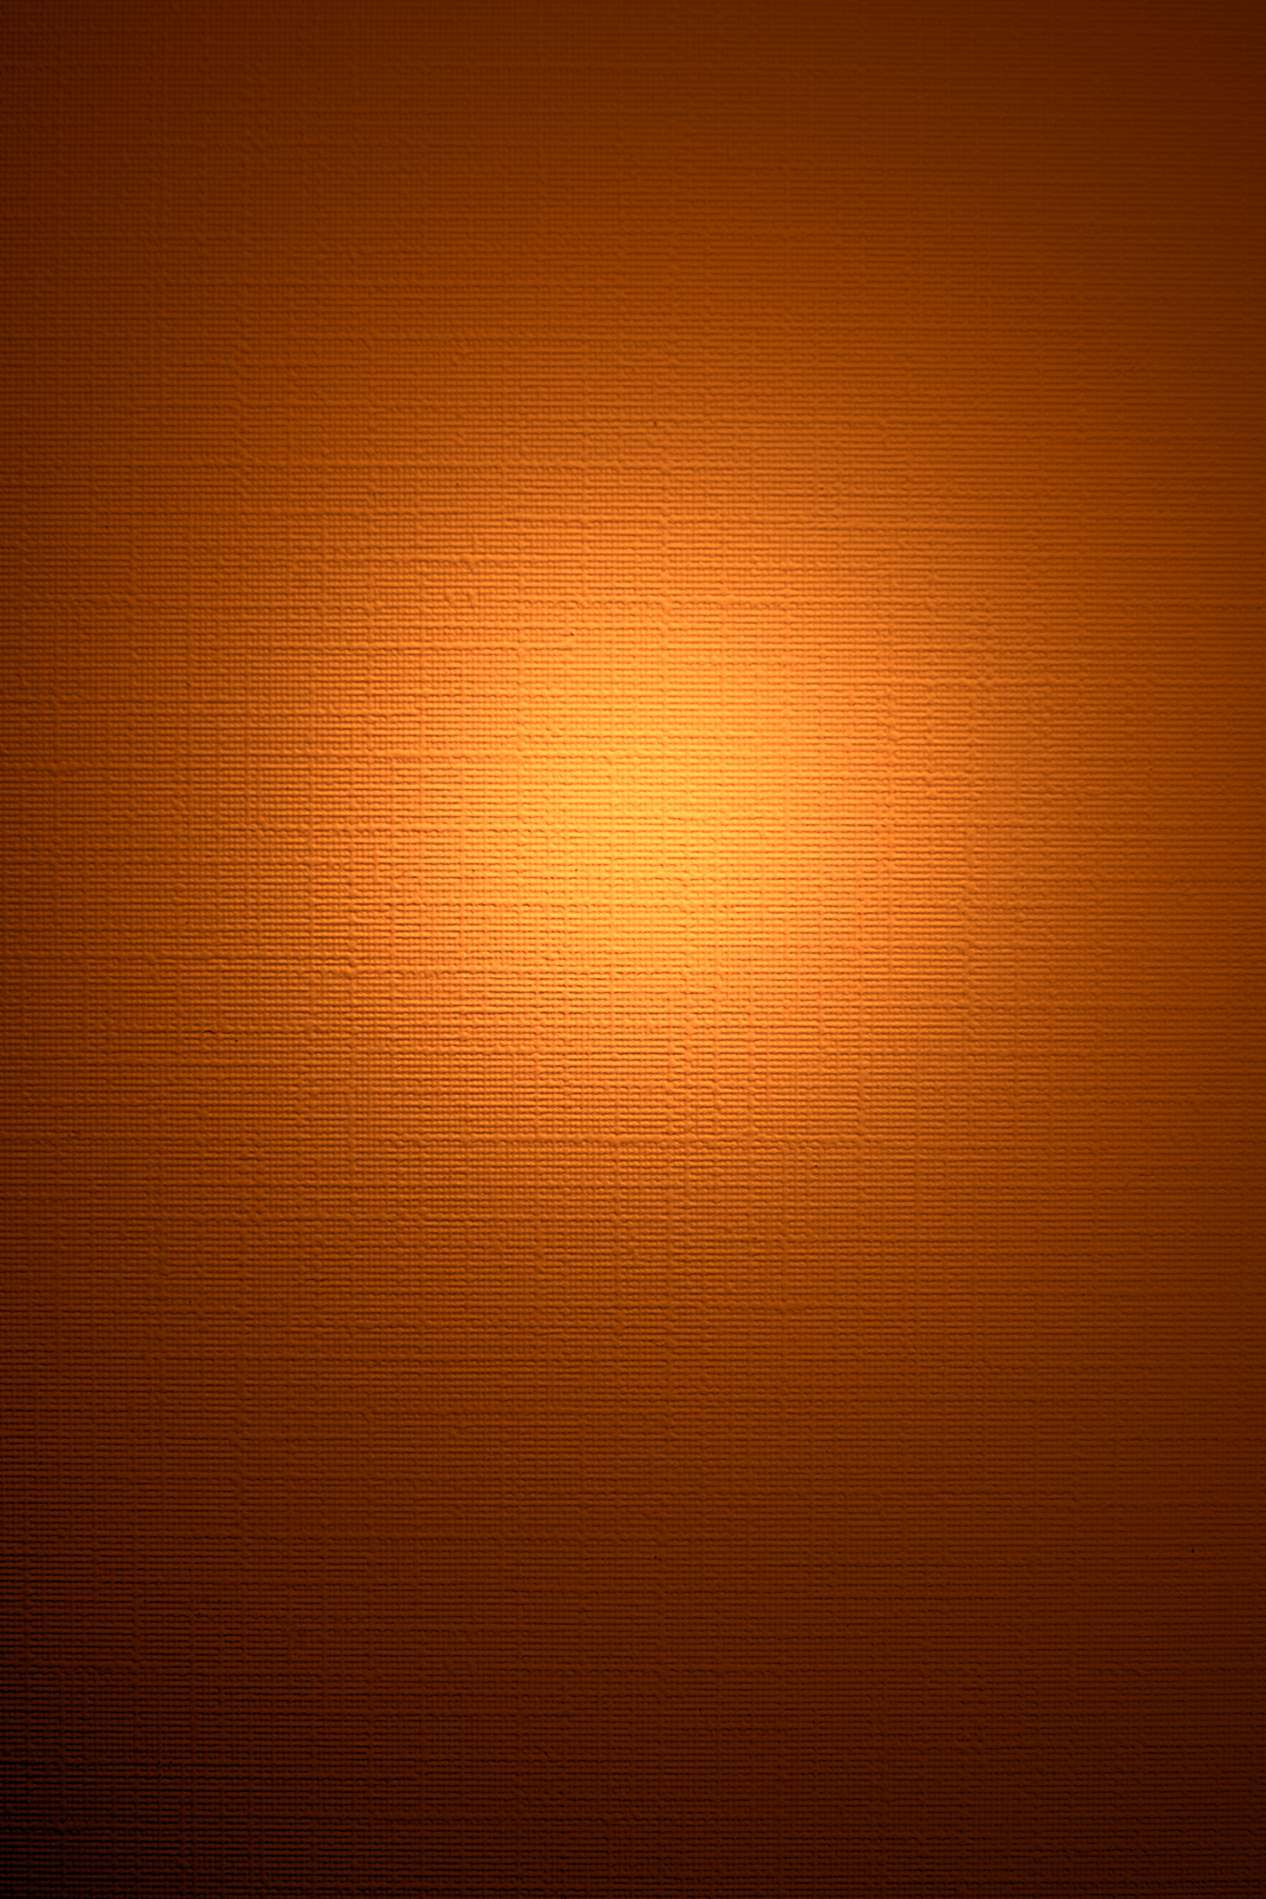 yellow gold gradient textured background photohdx